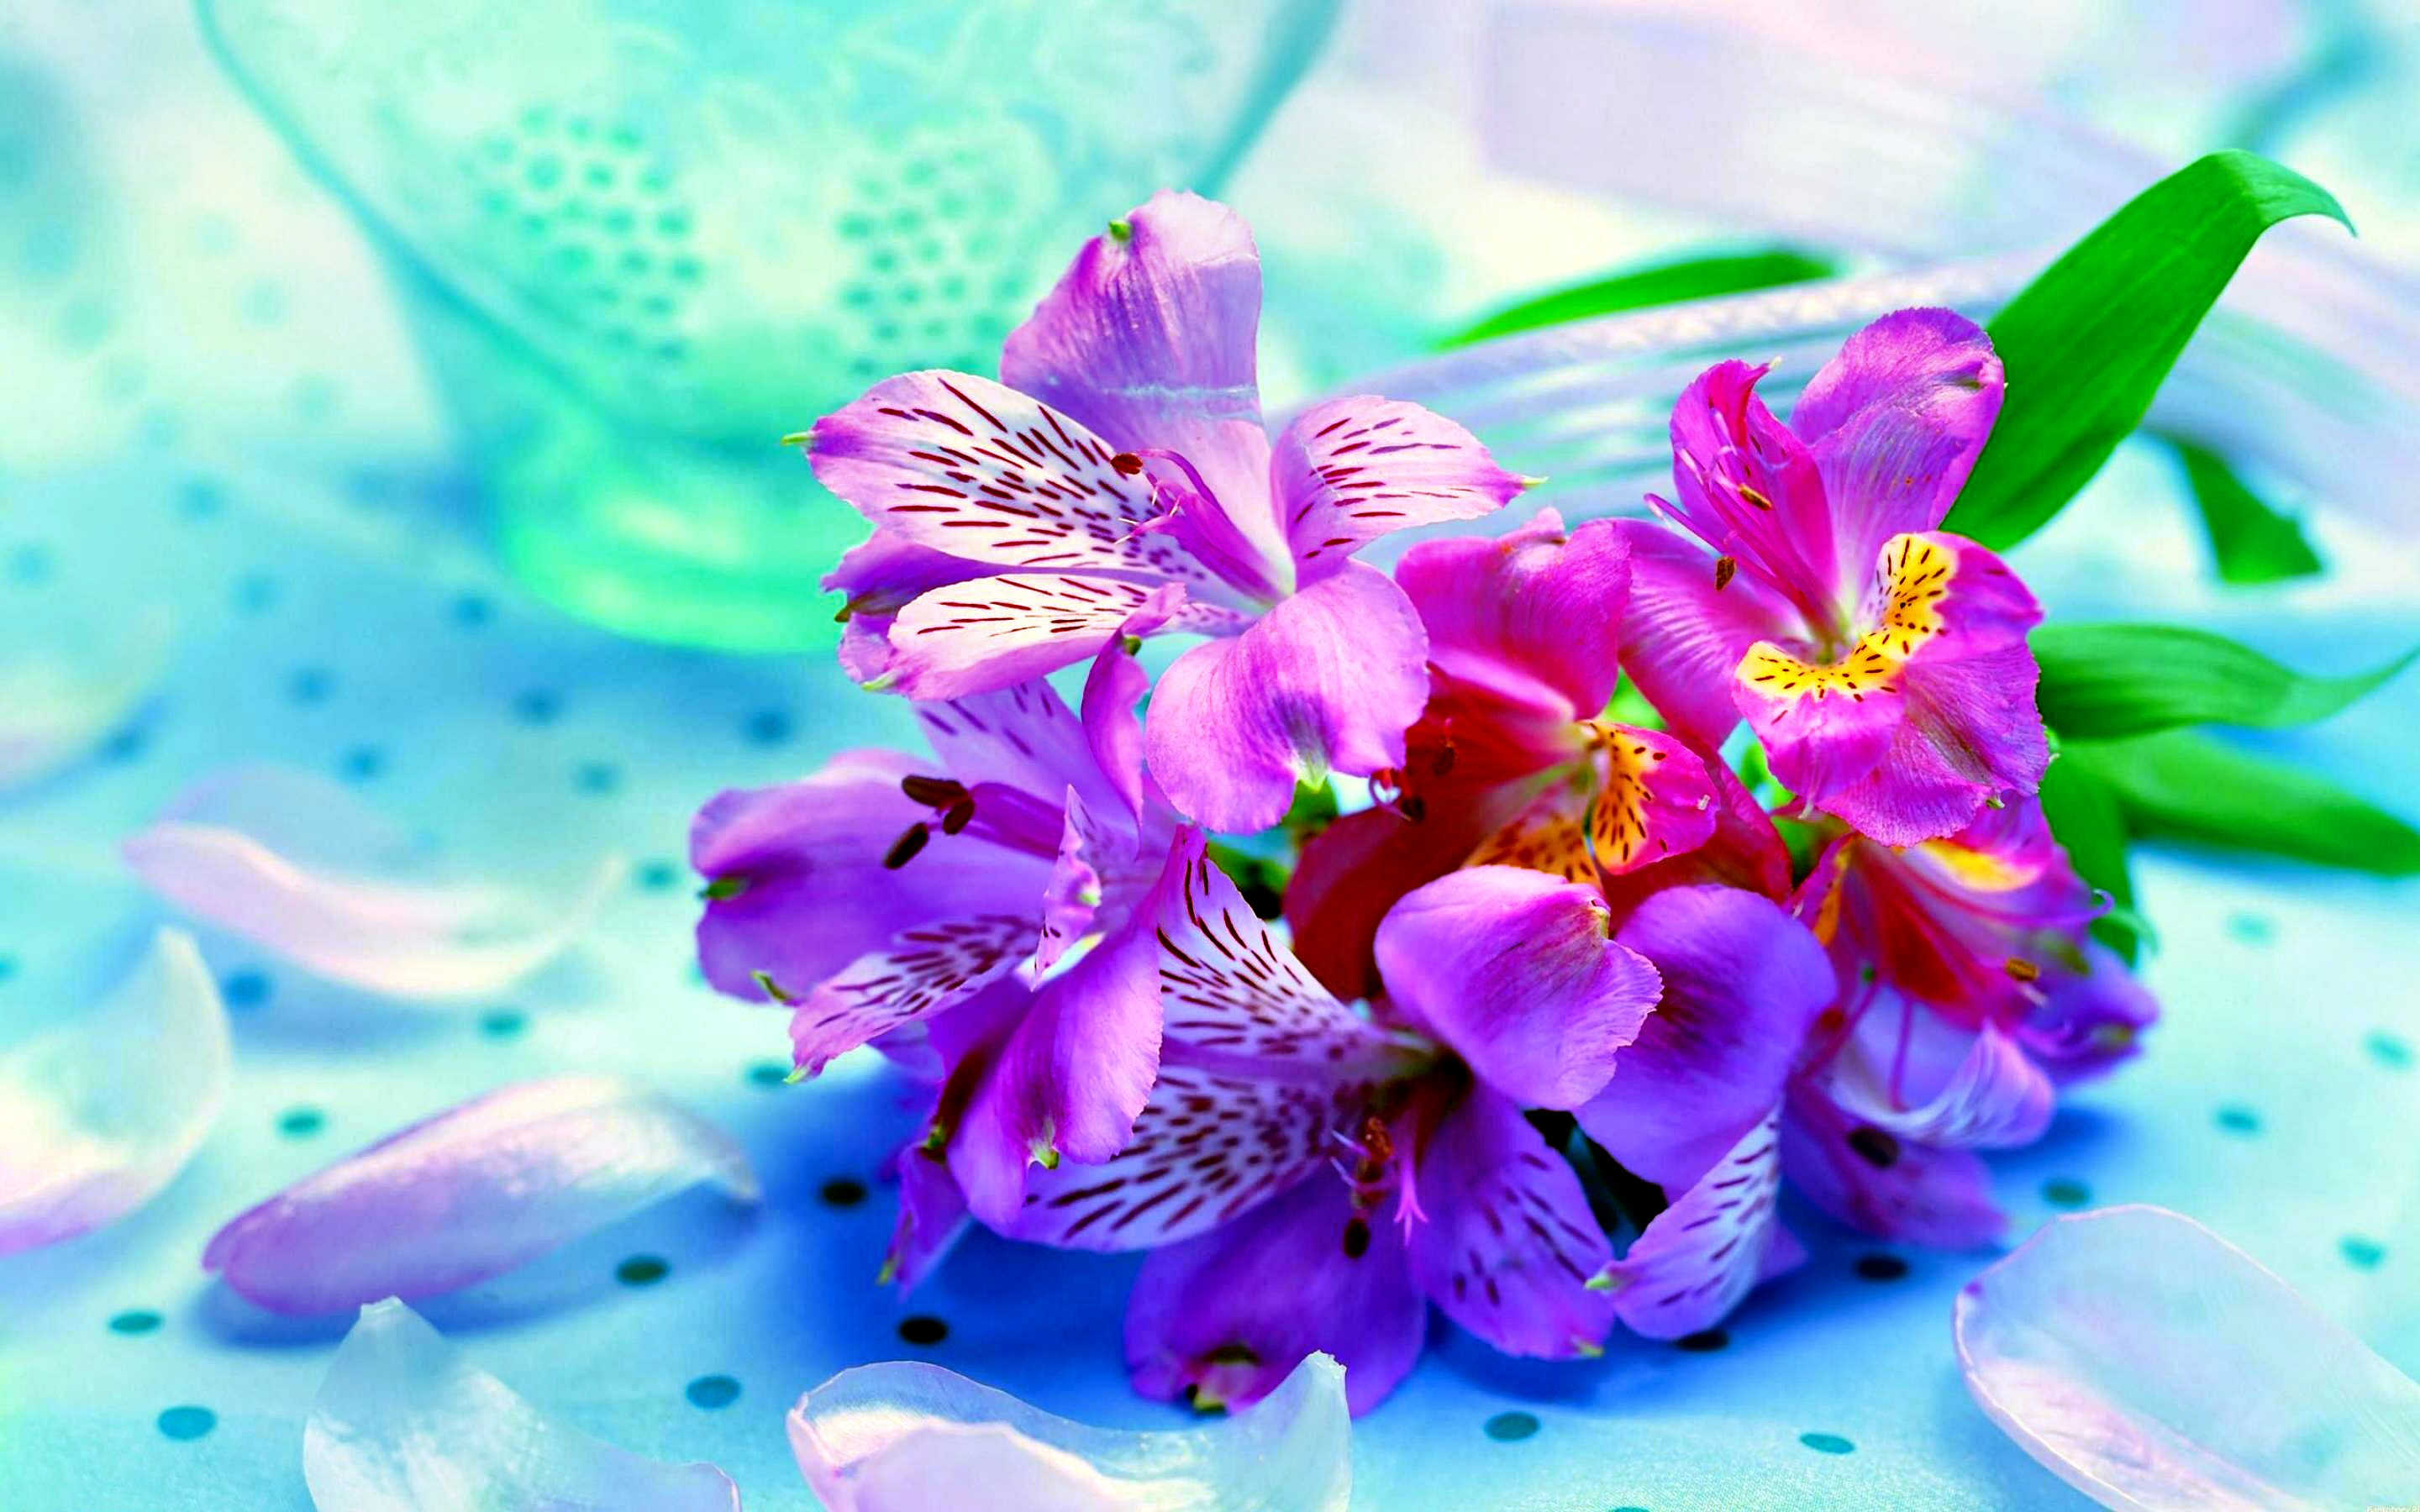 Flower Pictures For Wallpaper